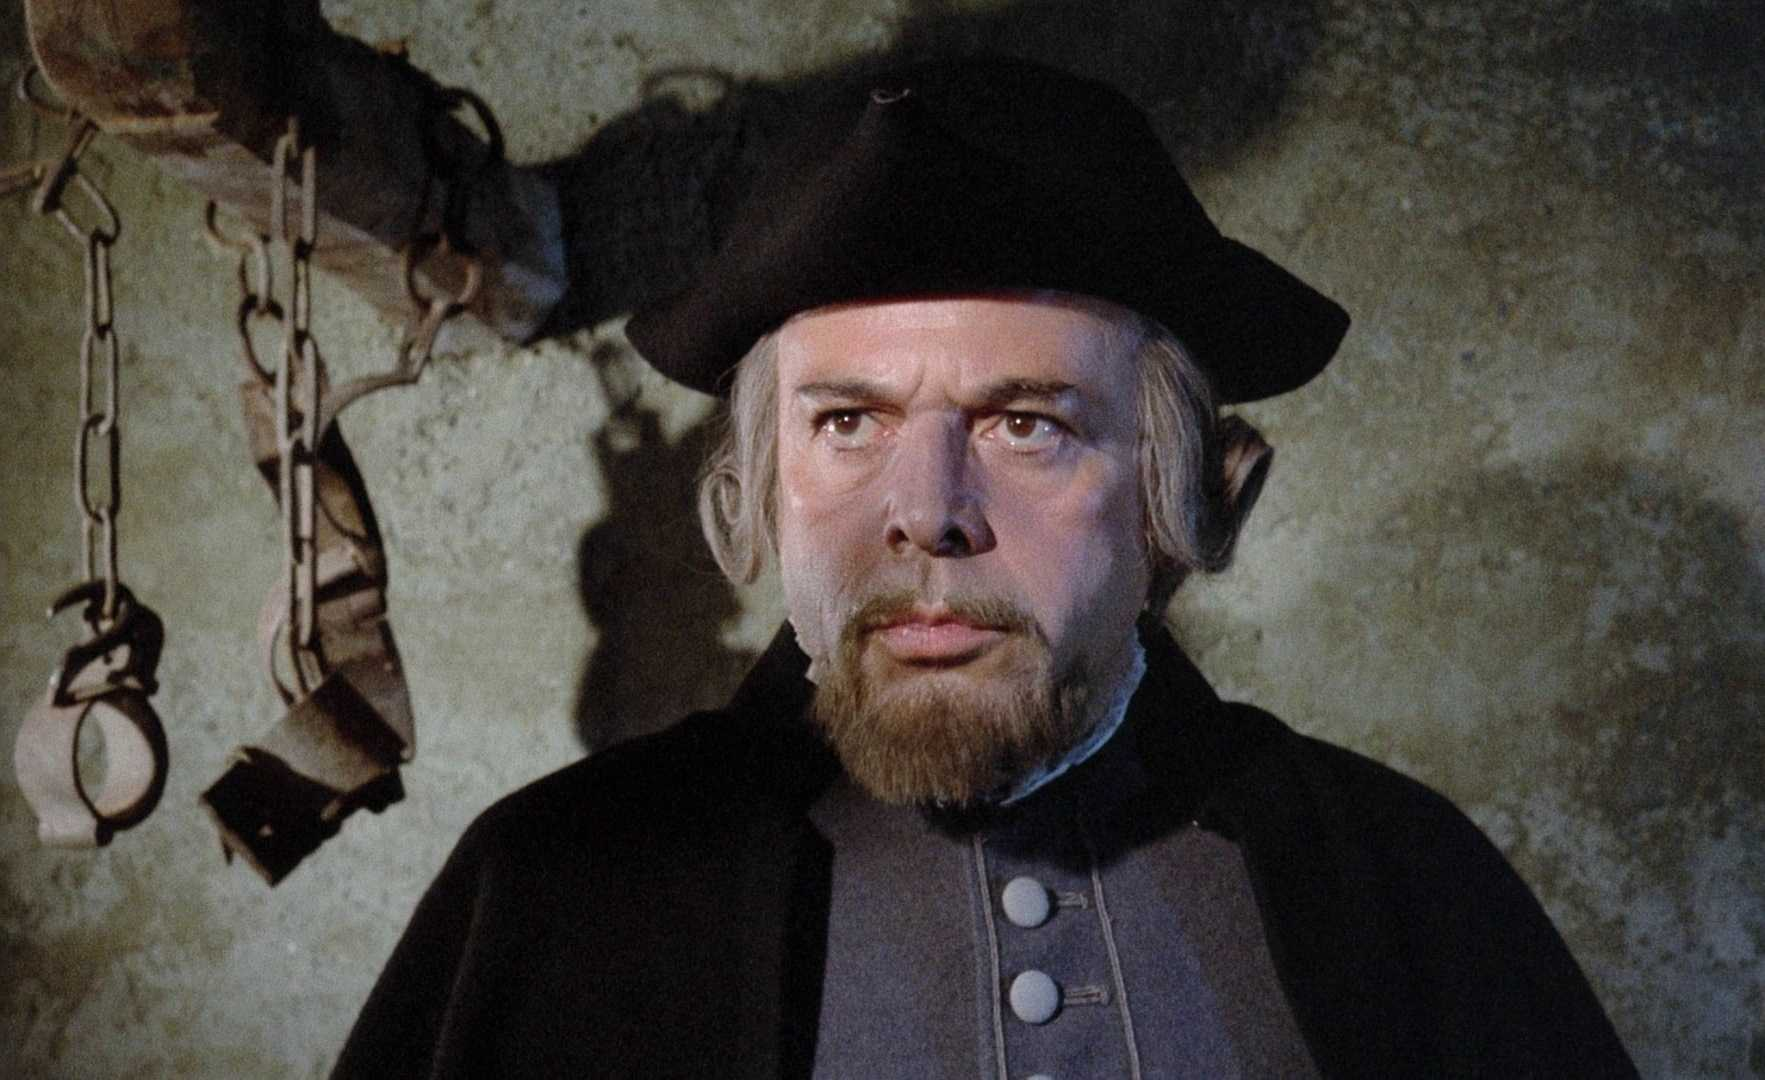 Herbert Lom as the witch hunter Lord Cumberland in Mark of the Devil (1970)